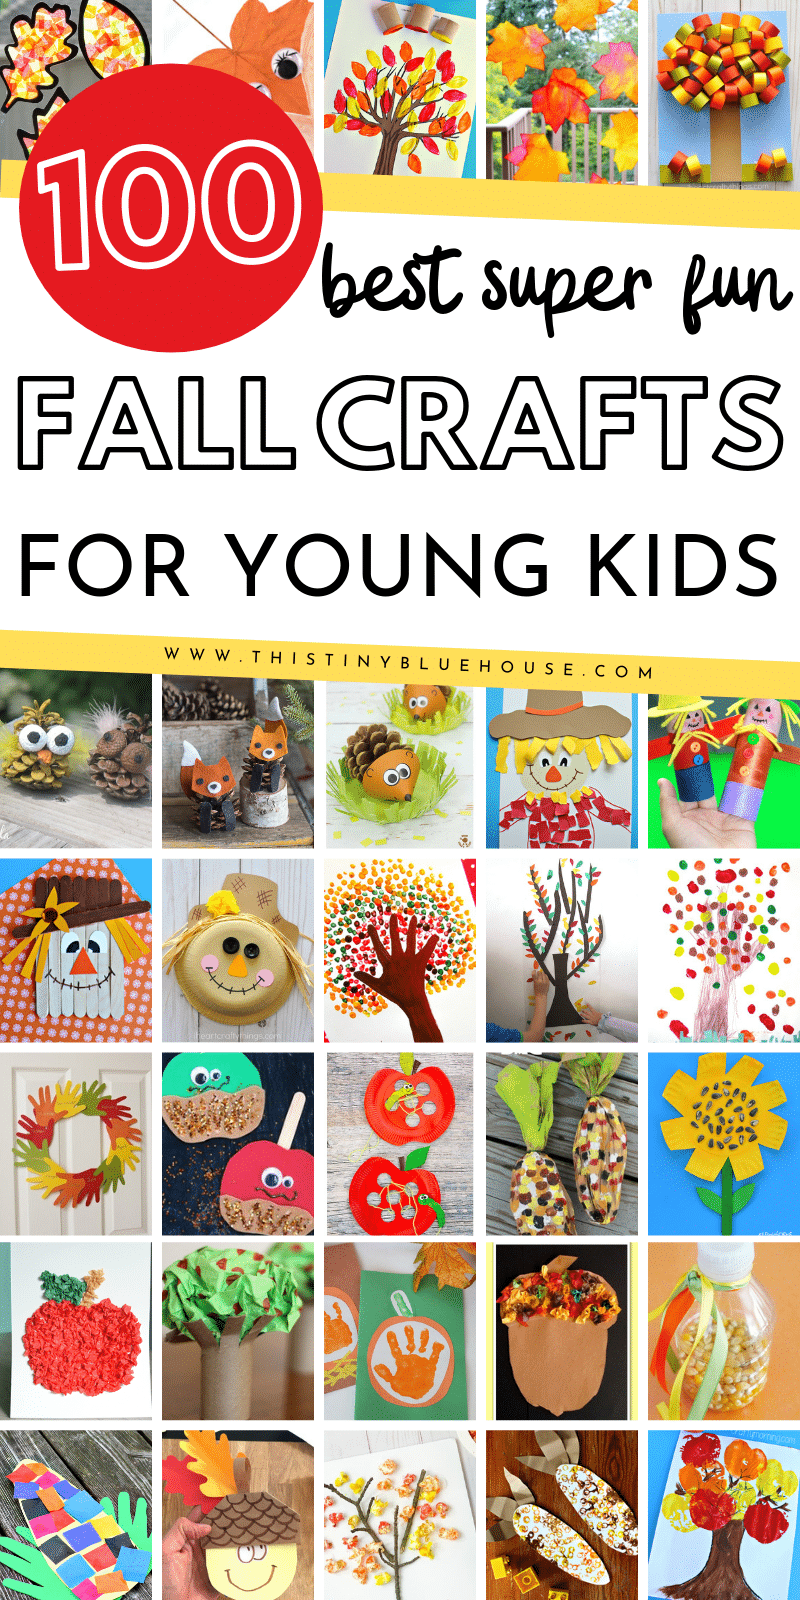 Here are over 90 best fun fall crafts for kids. Get excited about the arrival of fall with these easy to make kids craft ideas. #fallcrafts #fallcraftsforkids #bestfallcrafts #preschoolfallcrafts #autumncrafts #autumncraftideas #easyfallcraftsdiy